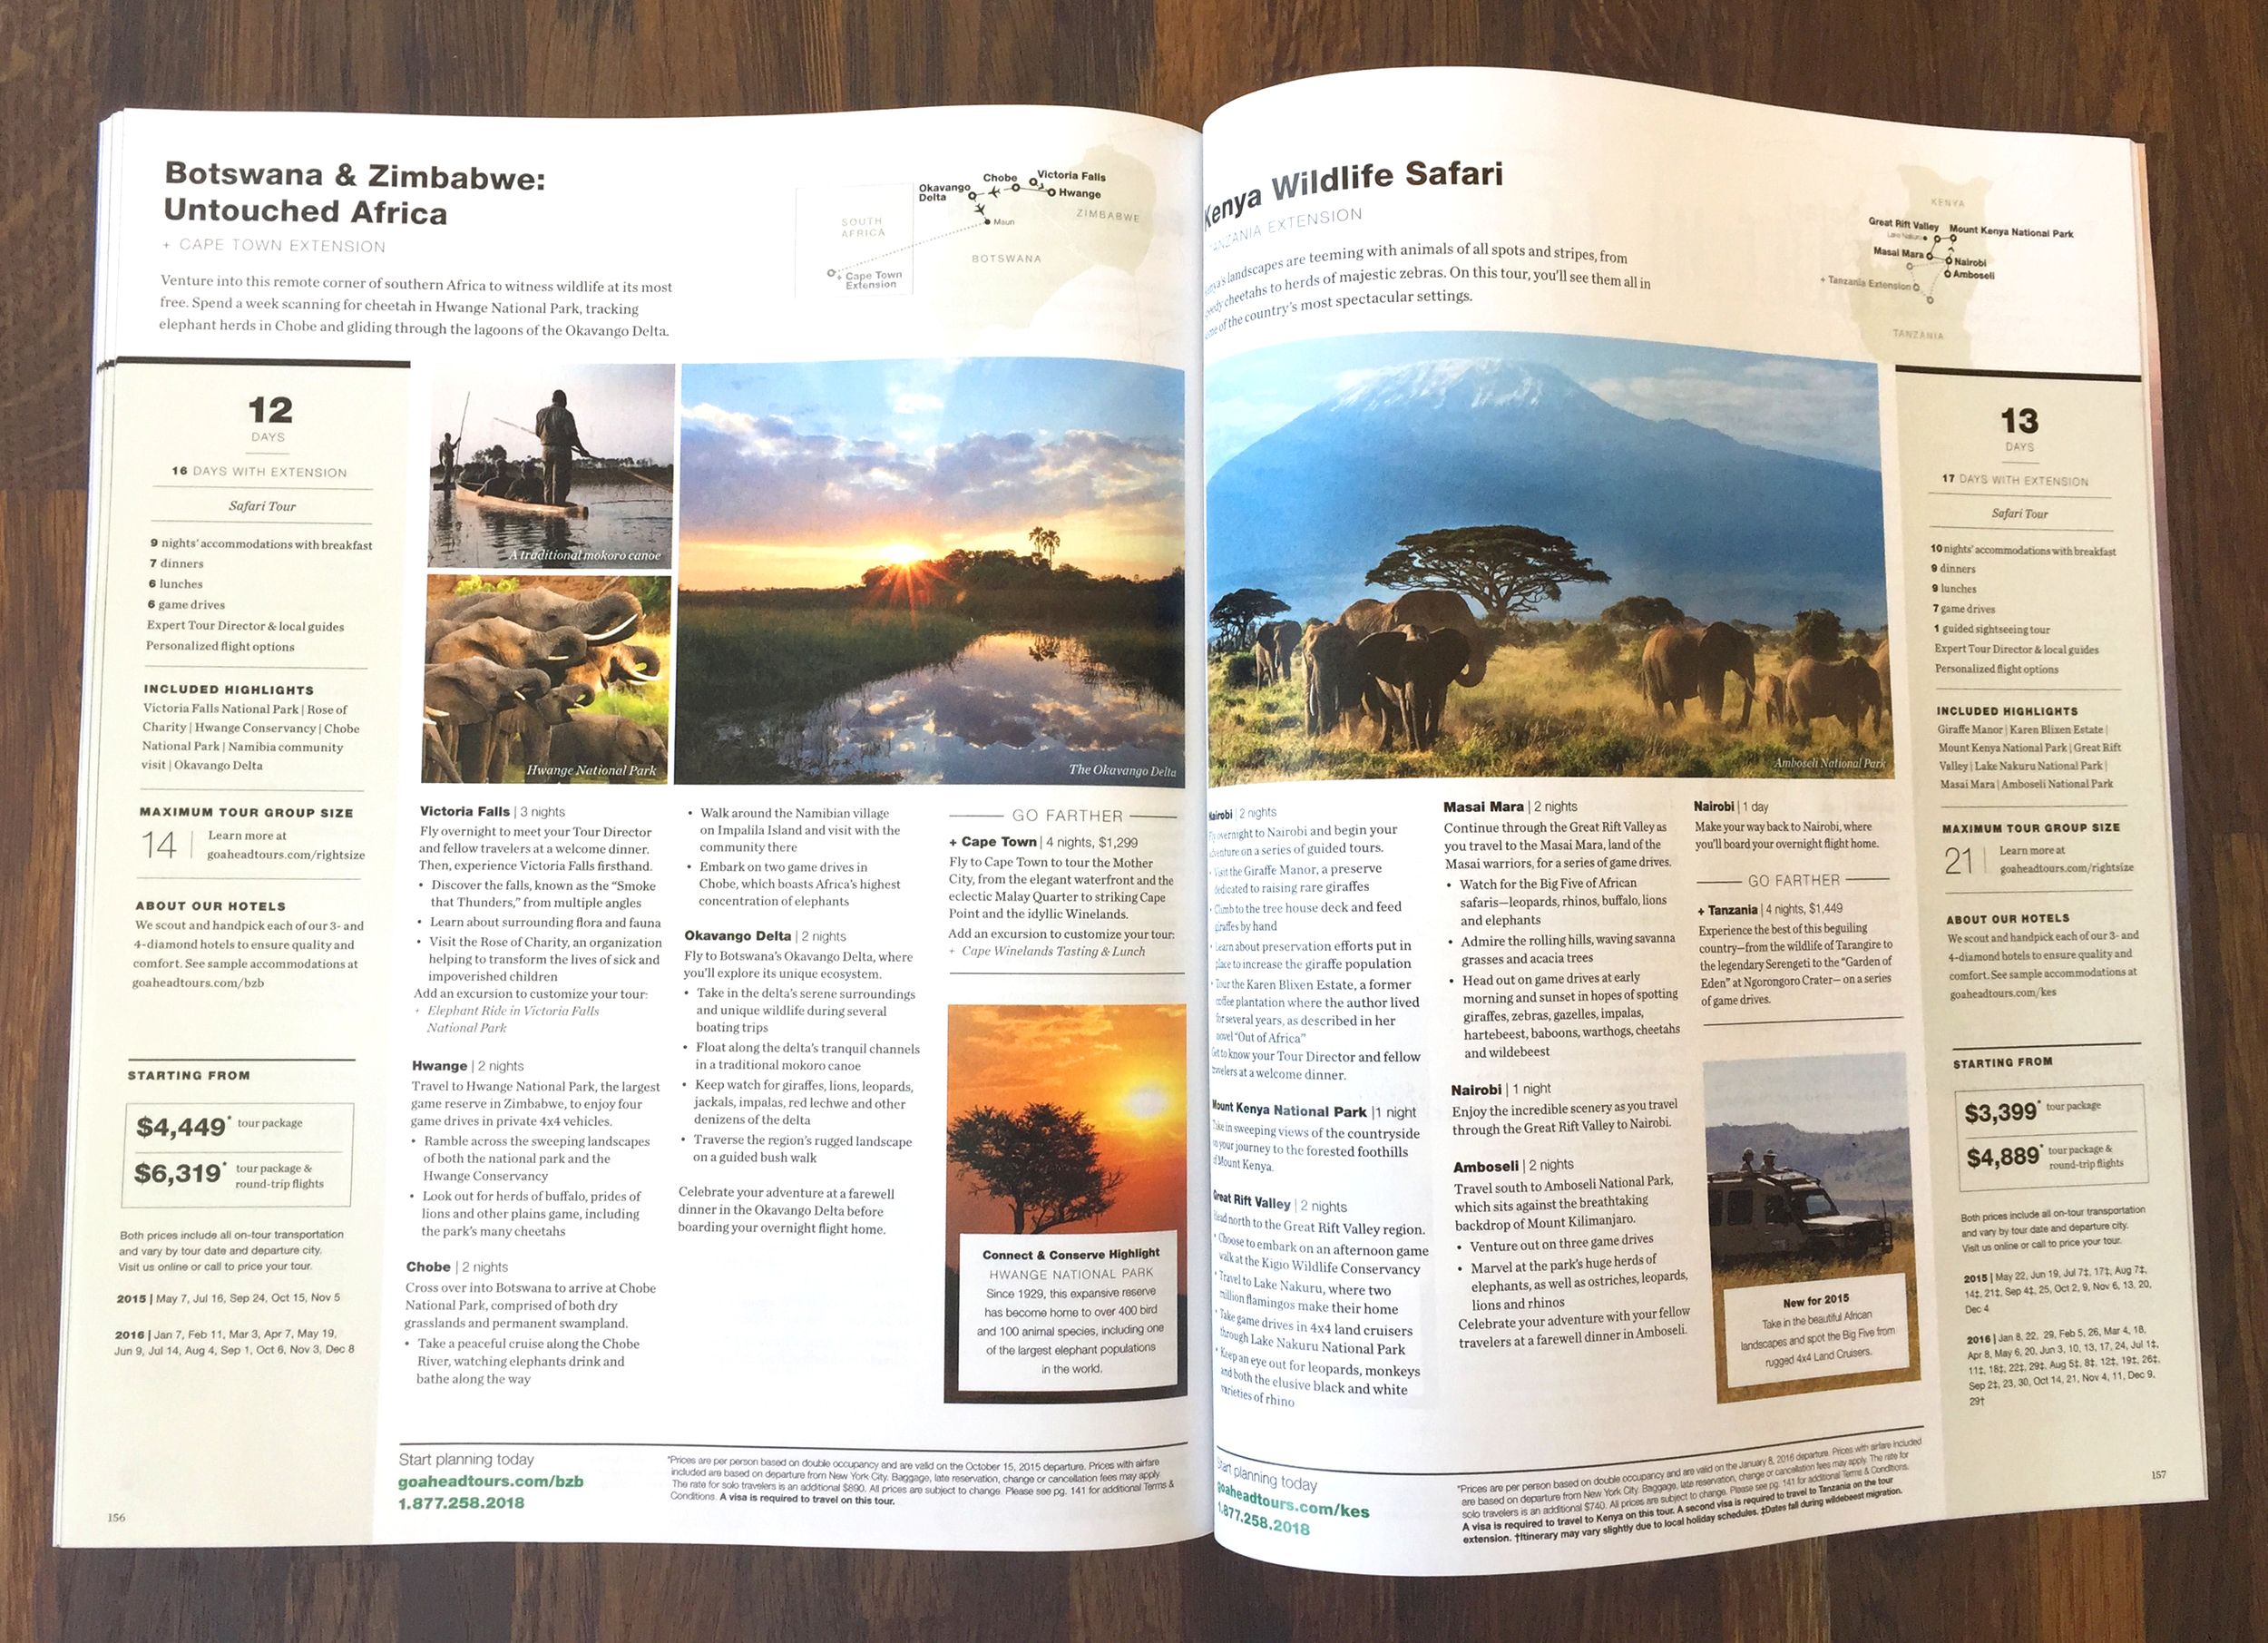 Full tour page spread (click to enlarge)